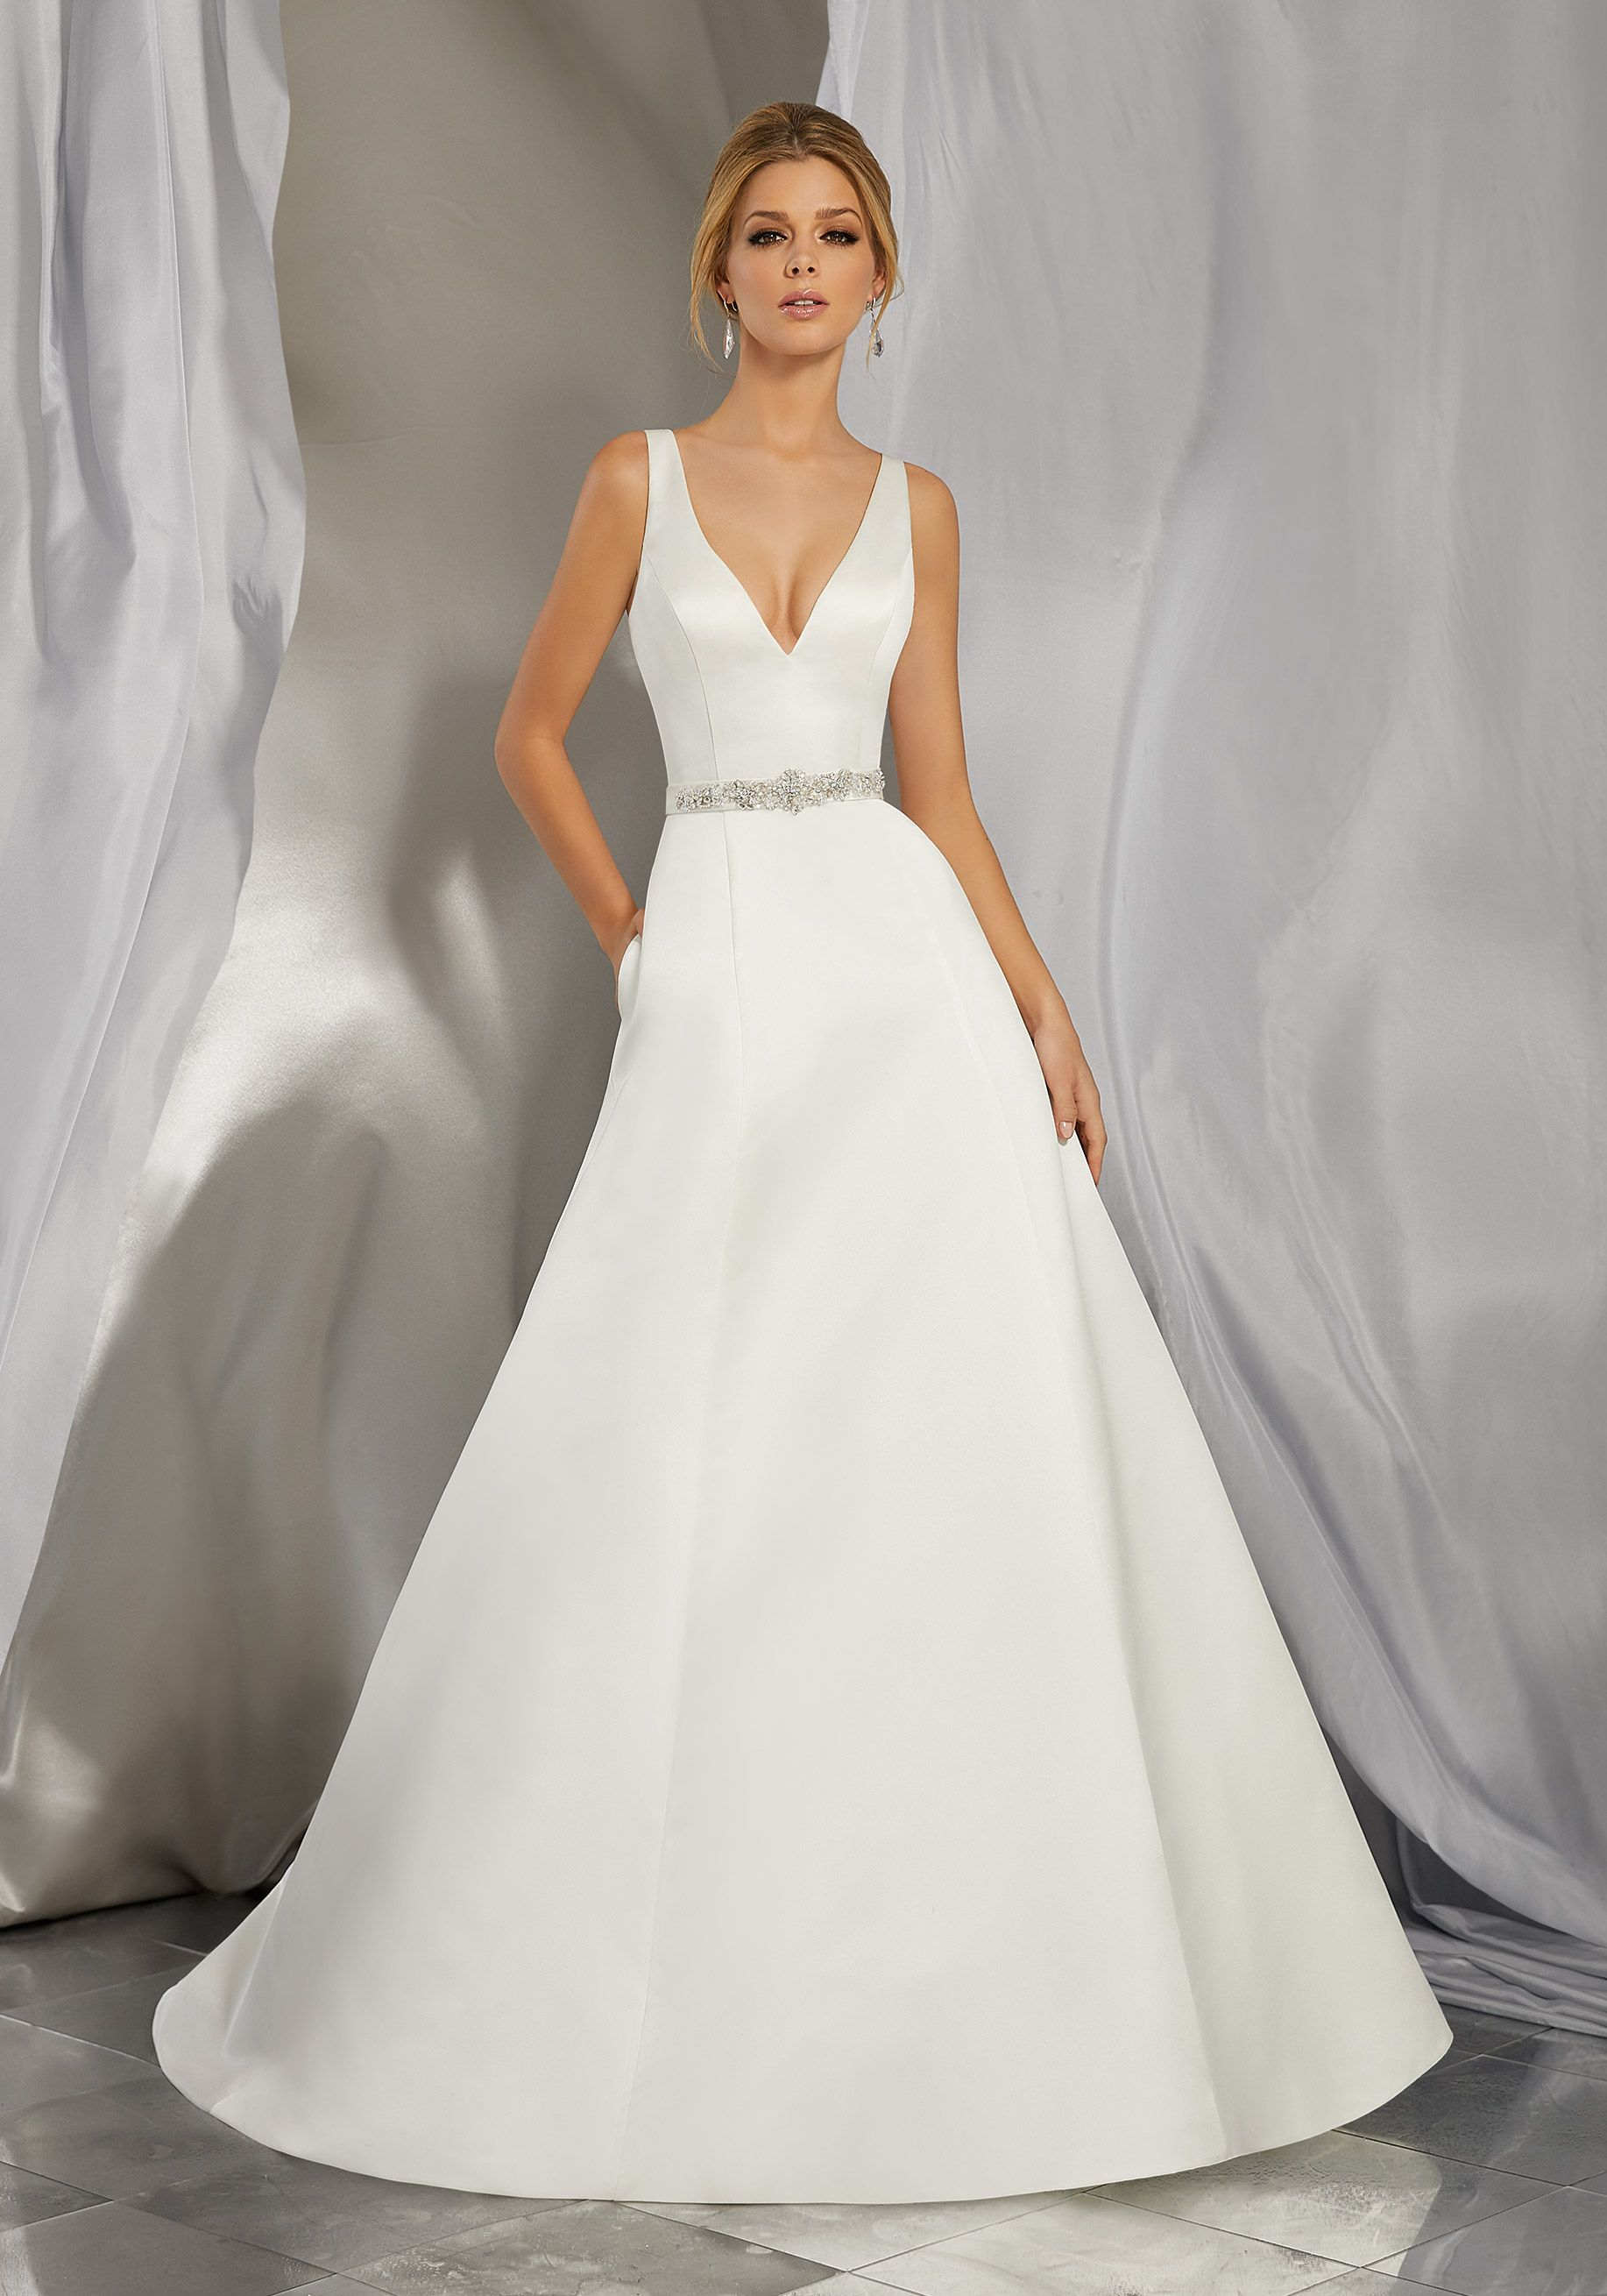 be58706ad96c Classic and Timeless, This Duchess Satin Slim A-Line Gown Features a Deep-V  Neckline and Open Back. A Removable Diamanté Encrusted Satin Belt, ...